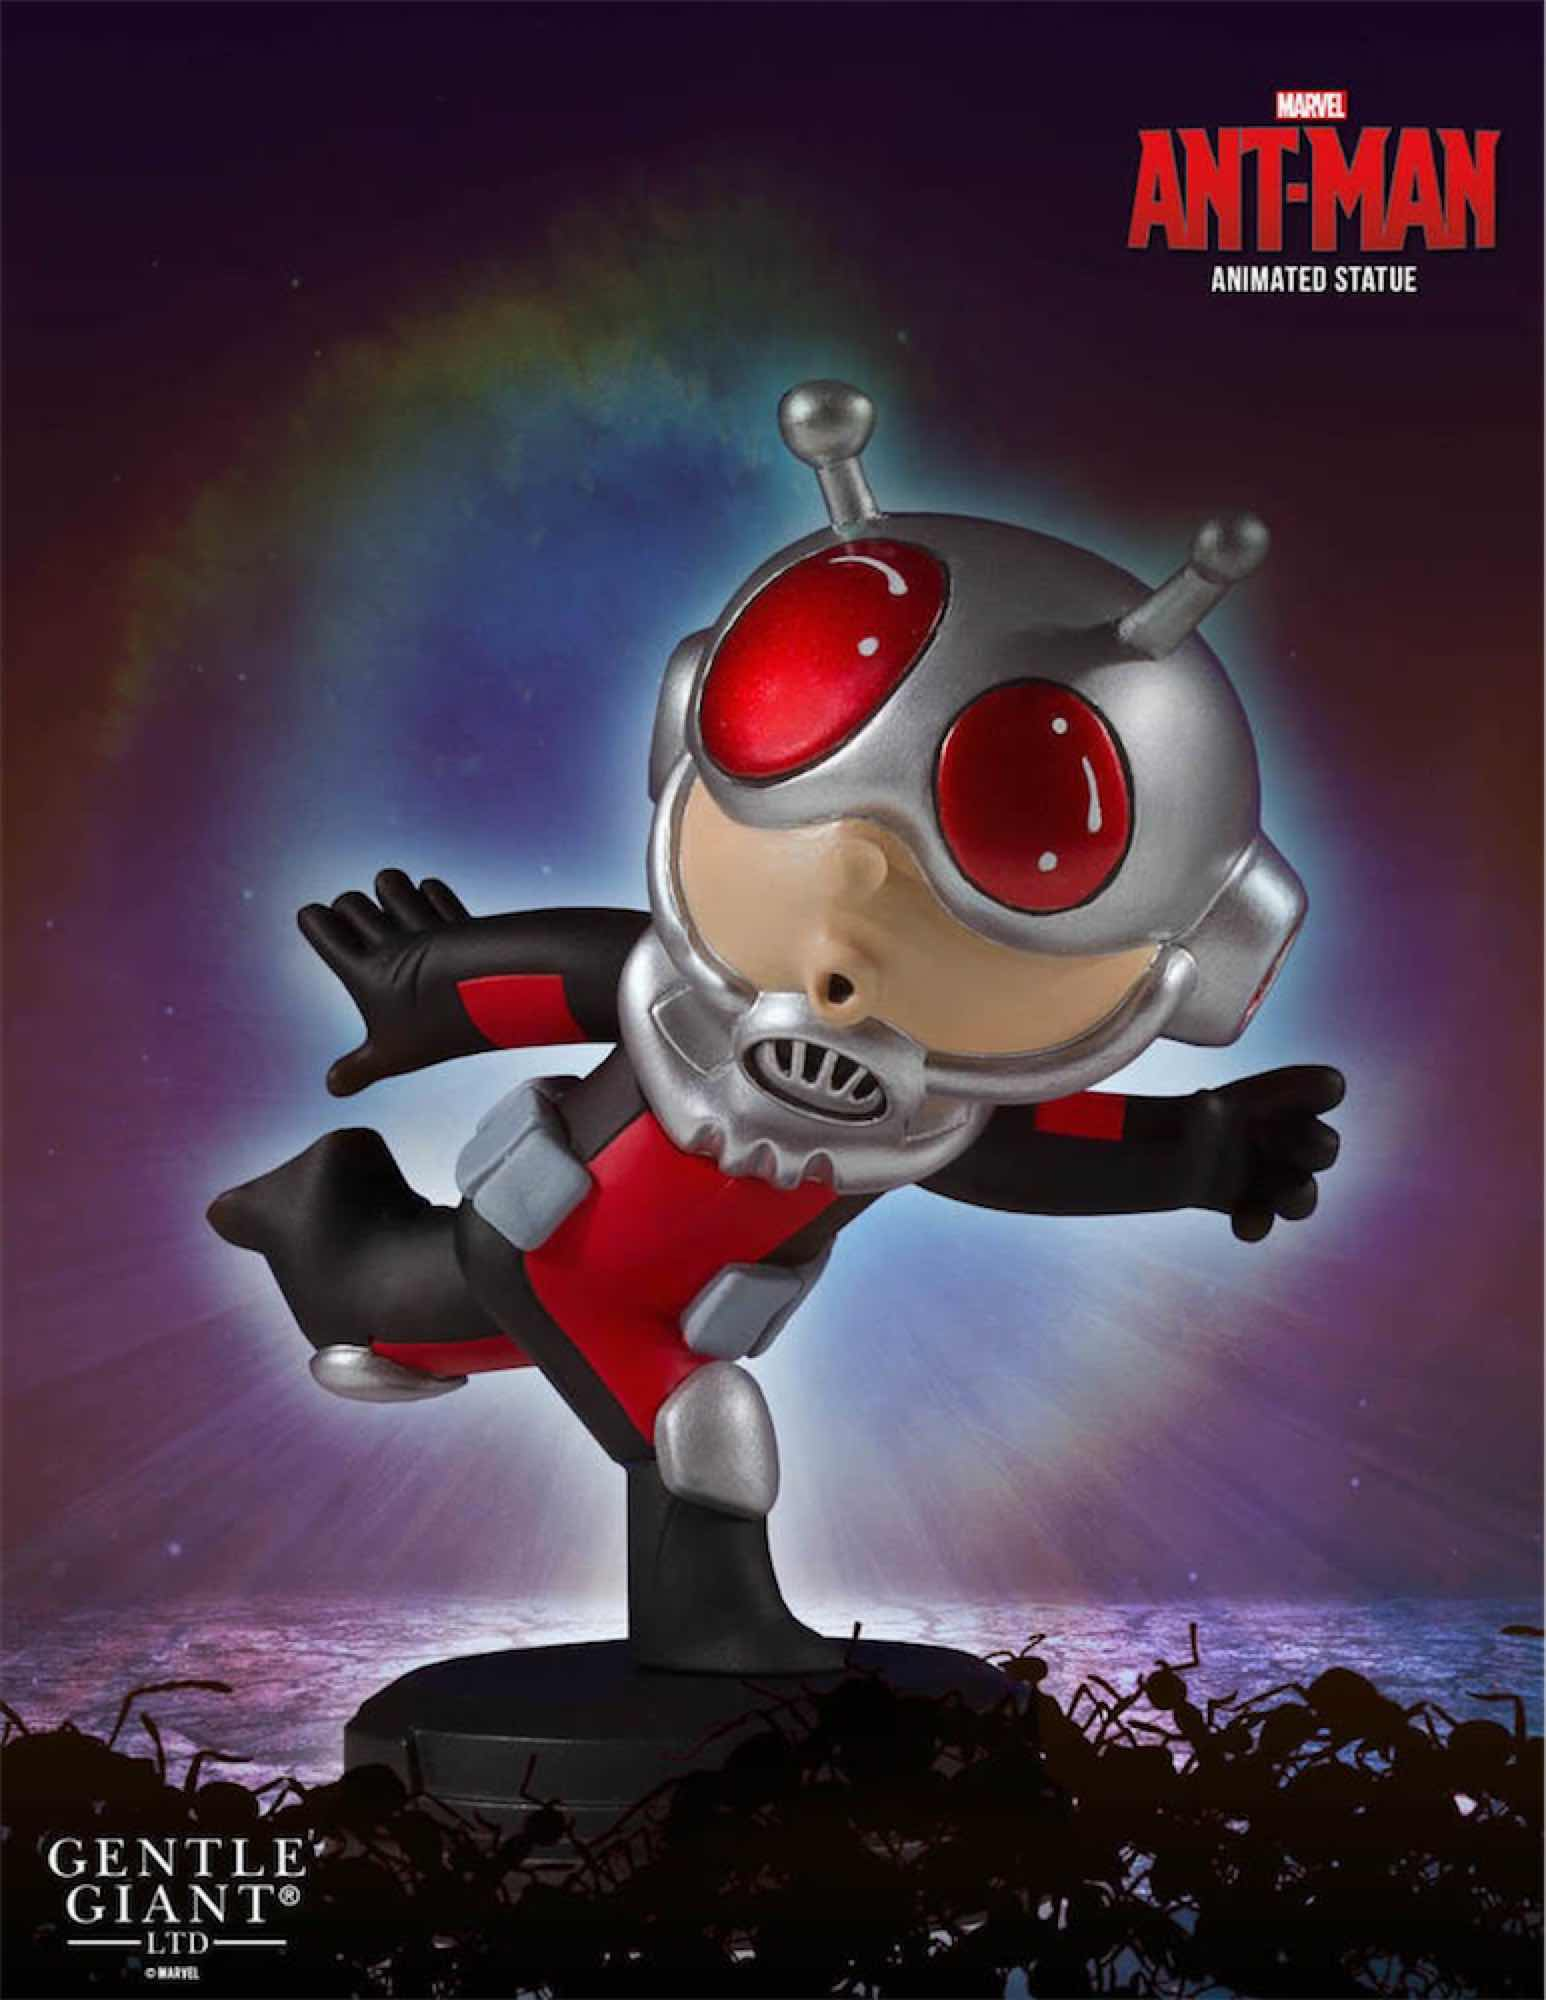 ANT-MAN ESTATUA MARVEL ANIMATED STATUE GENTLE GIANT